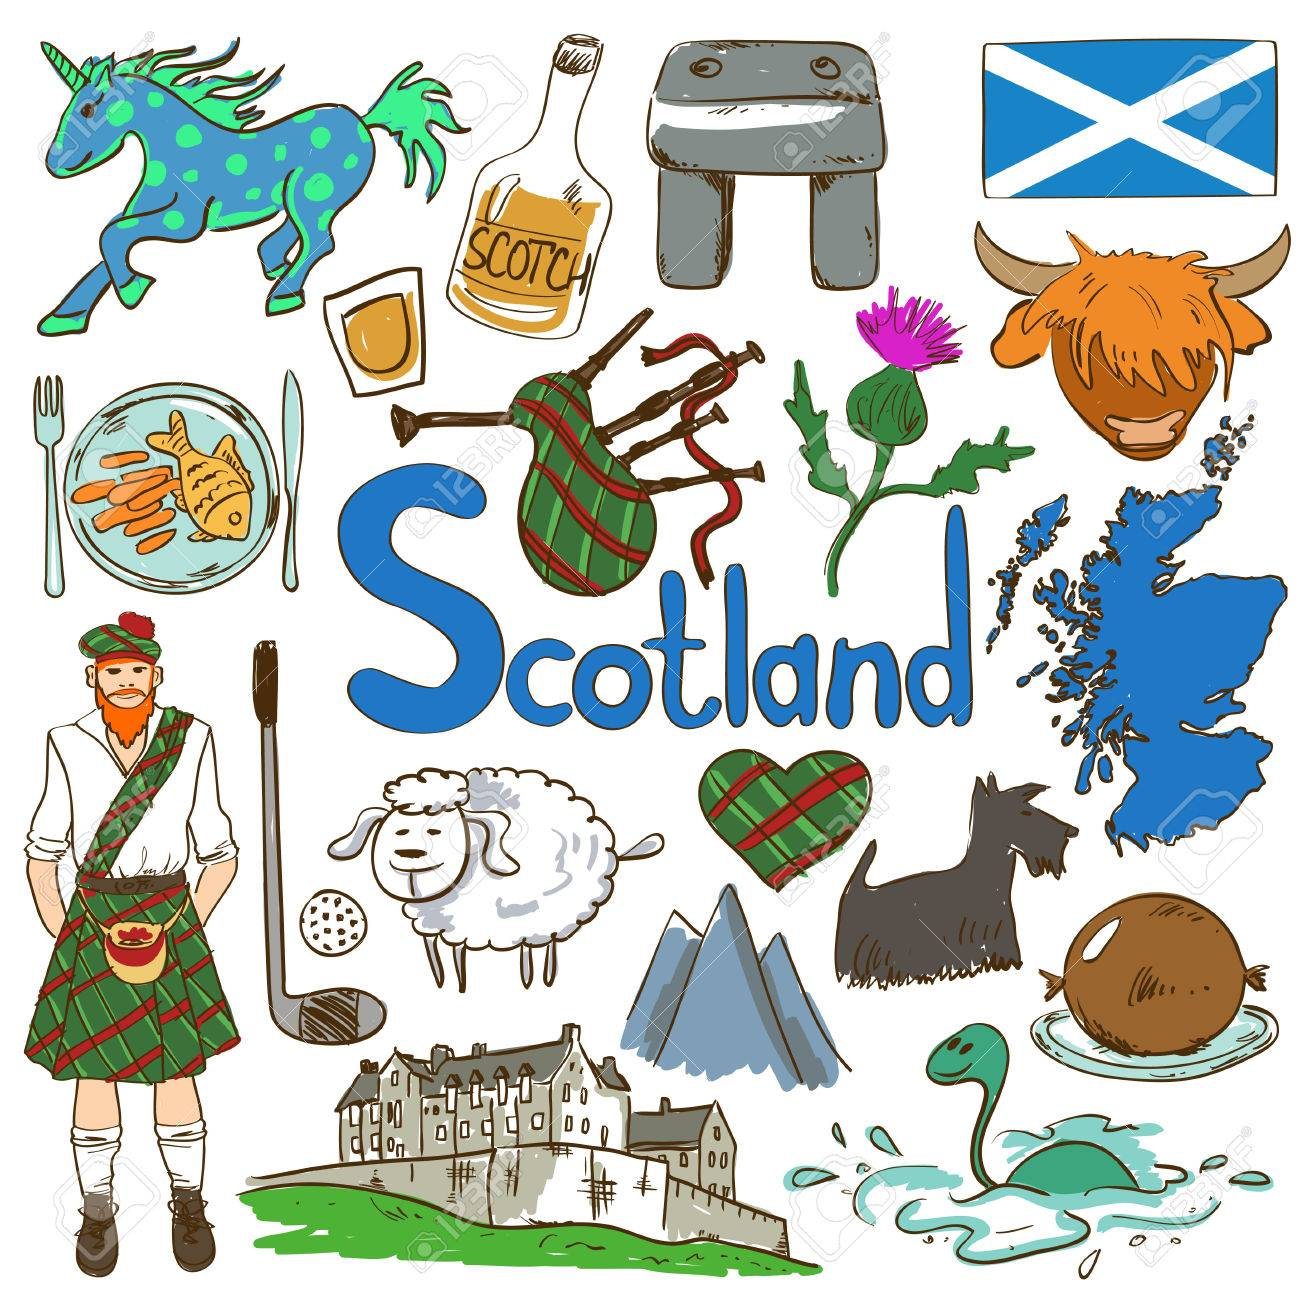 Fun colorful sketch collection of scottish icons travel concept fun colorful sketch collection of scottish icons travel concept of scotland symbols and association buycottarizona Image collections